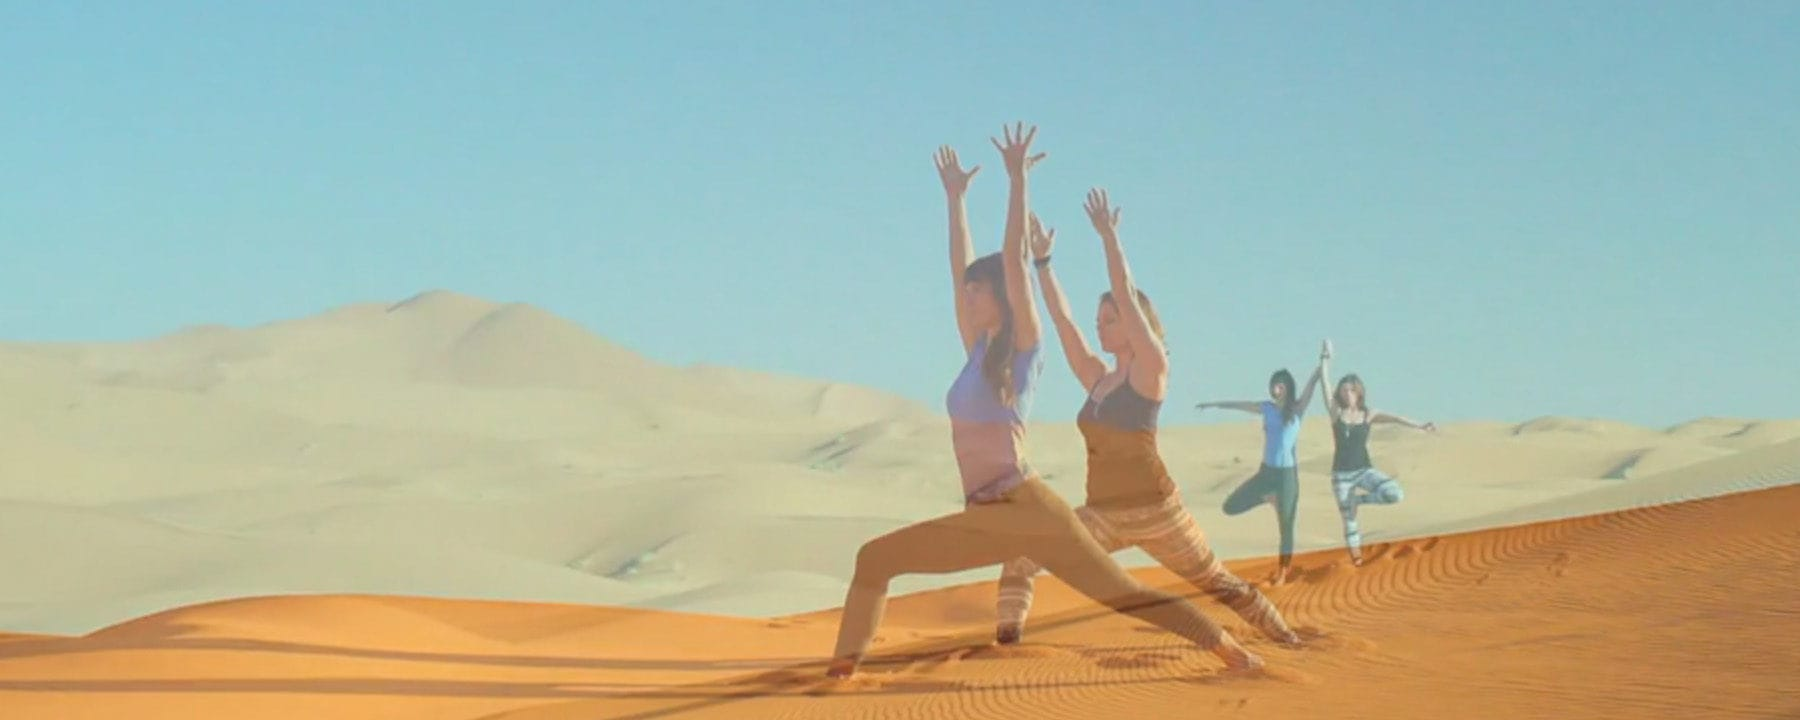 NOSADE Yoga Retreats_Source NOSADE